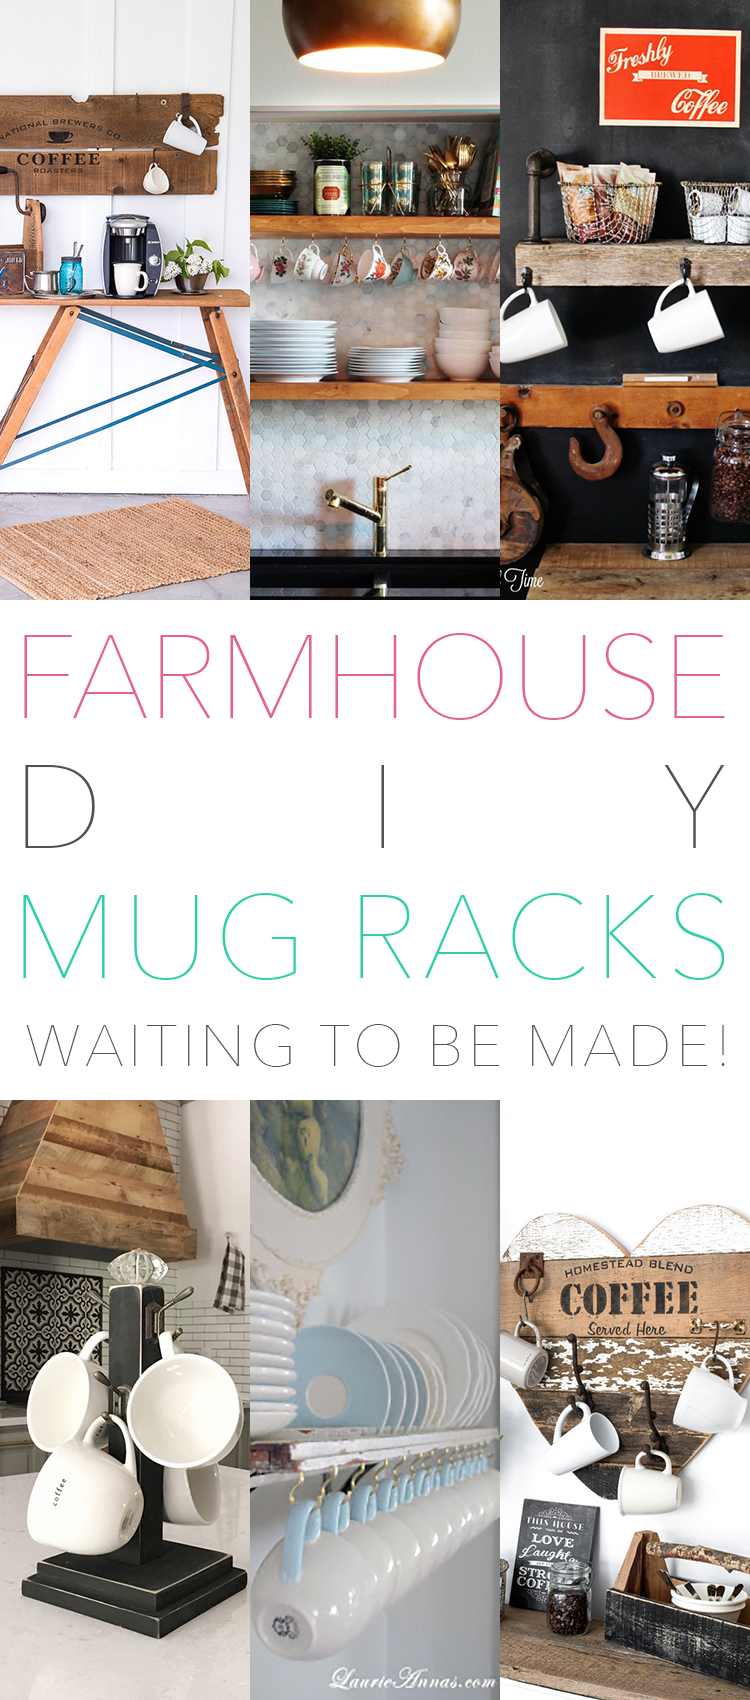 Farmhouse DIY Mug Racks waiting to be made